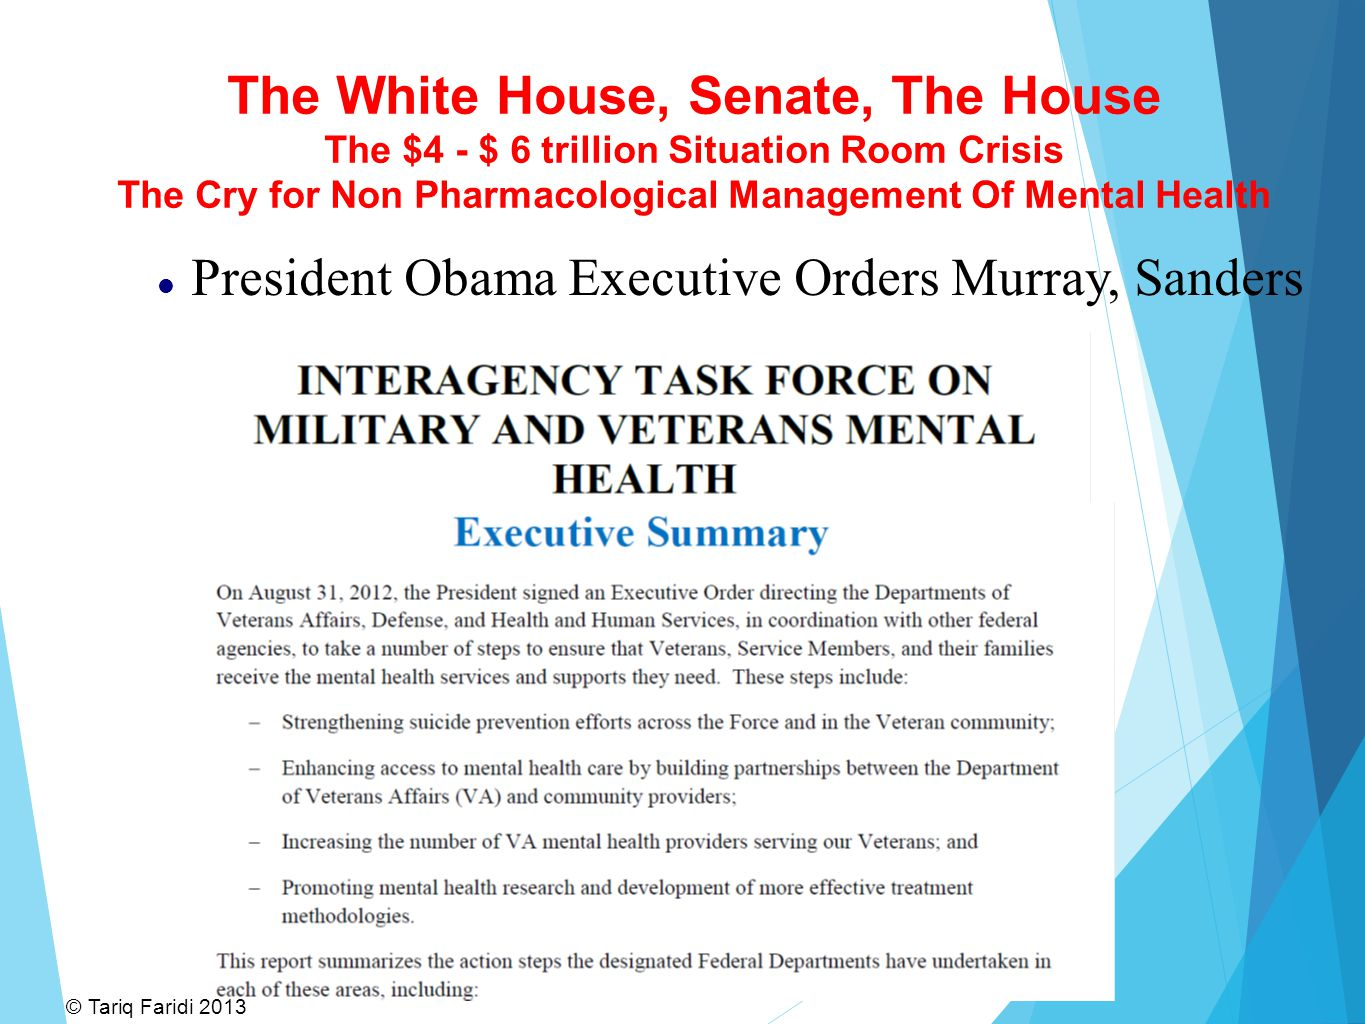 The White House The Senate, The House of Representatives A Healthcare Crisis from the OIF and OEF Iraq Afghan War Actions A crisis, that in human lives and deaths alone, takes twice as many lives through suicides alone, caused by Psych meds, that total COMBAT deaths in the last 10 years.